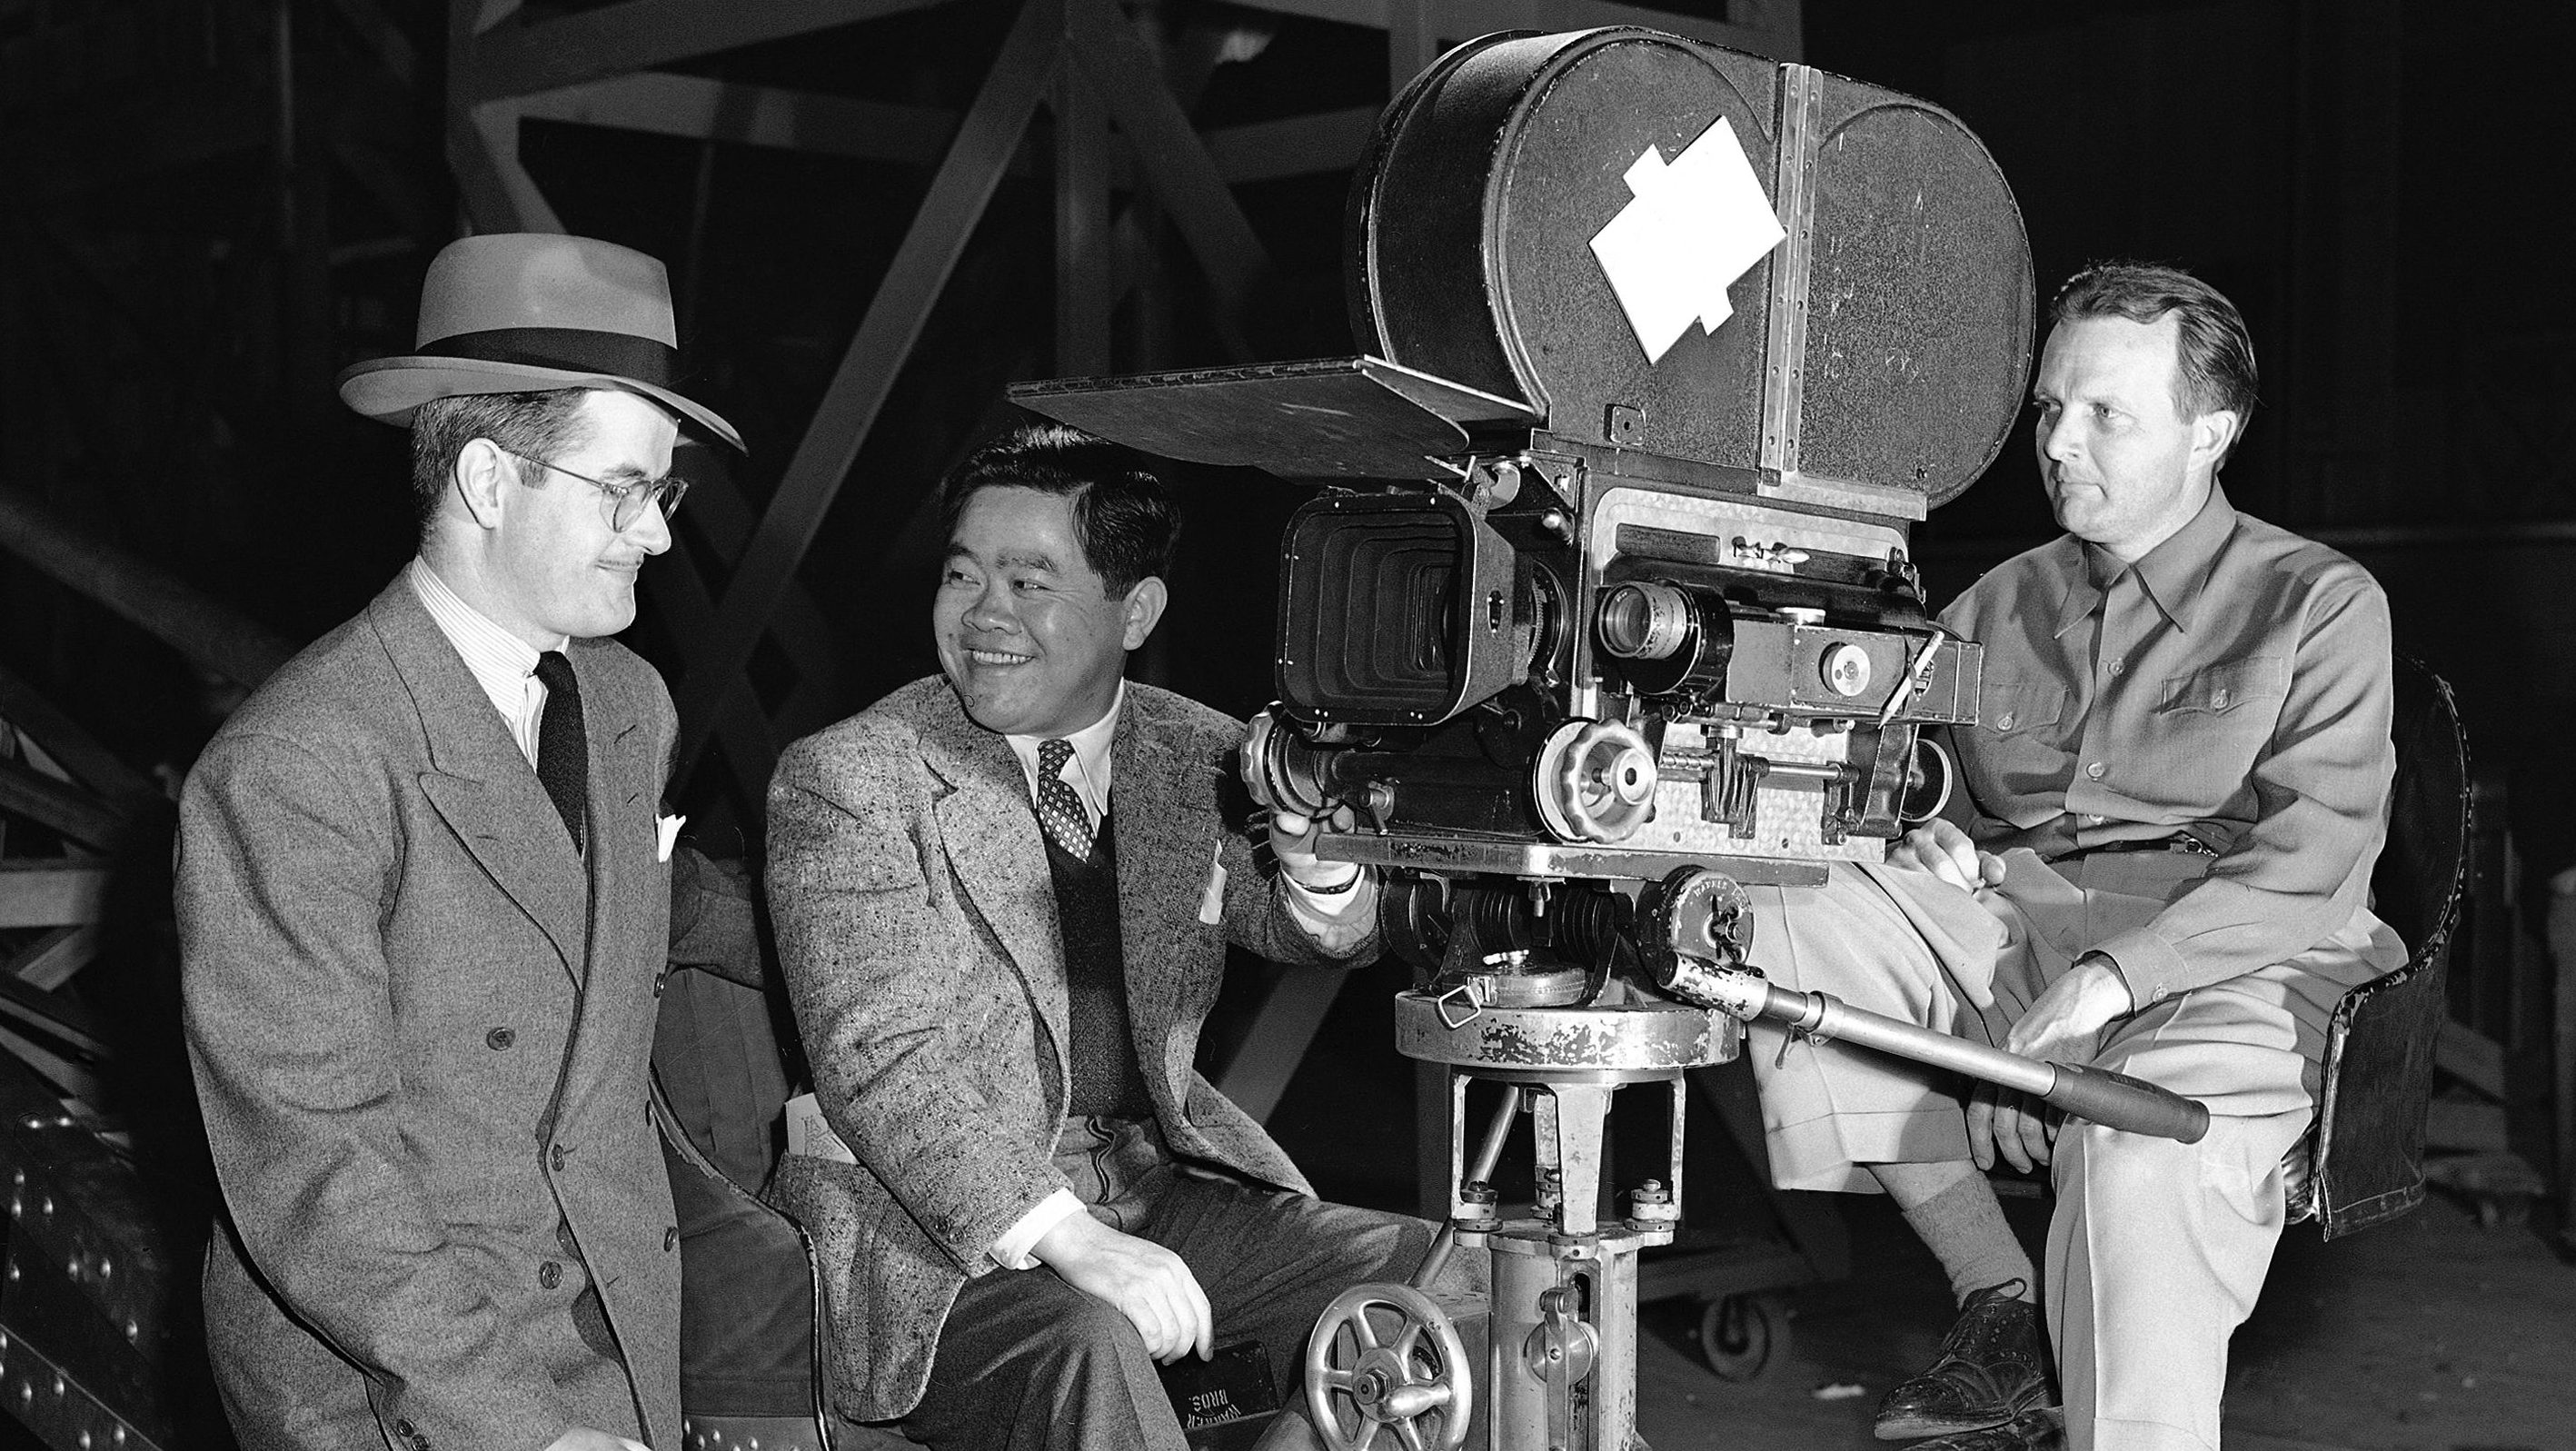 James Wong Howe: Today's Google doodle honors the legendary